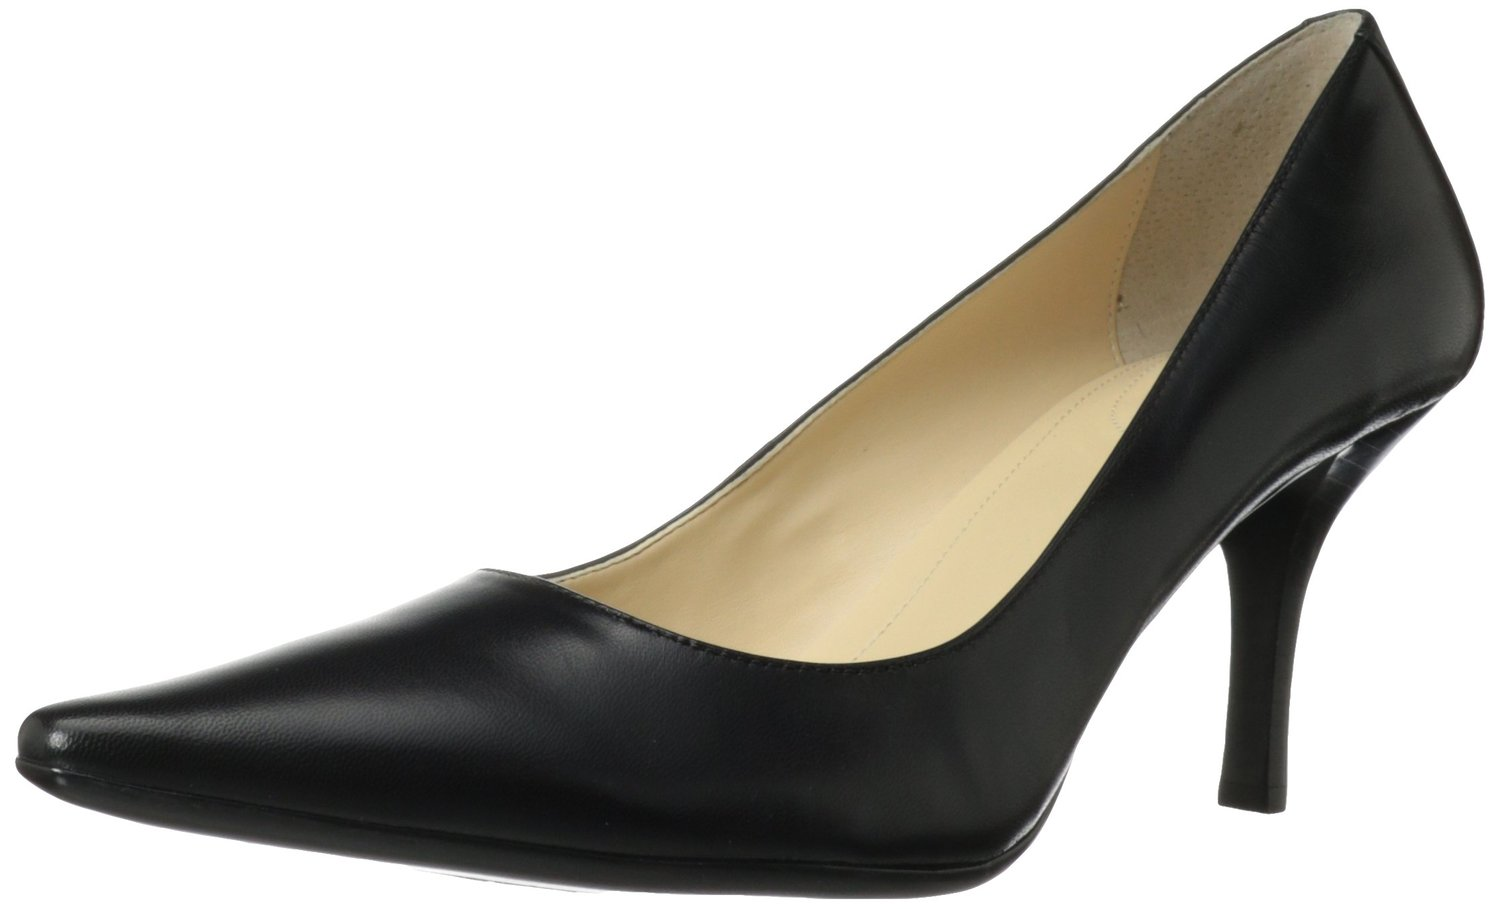 Calvin Klein Dolly Shoes Black